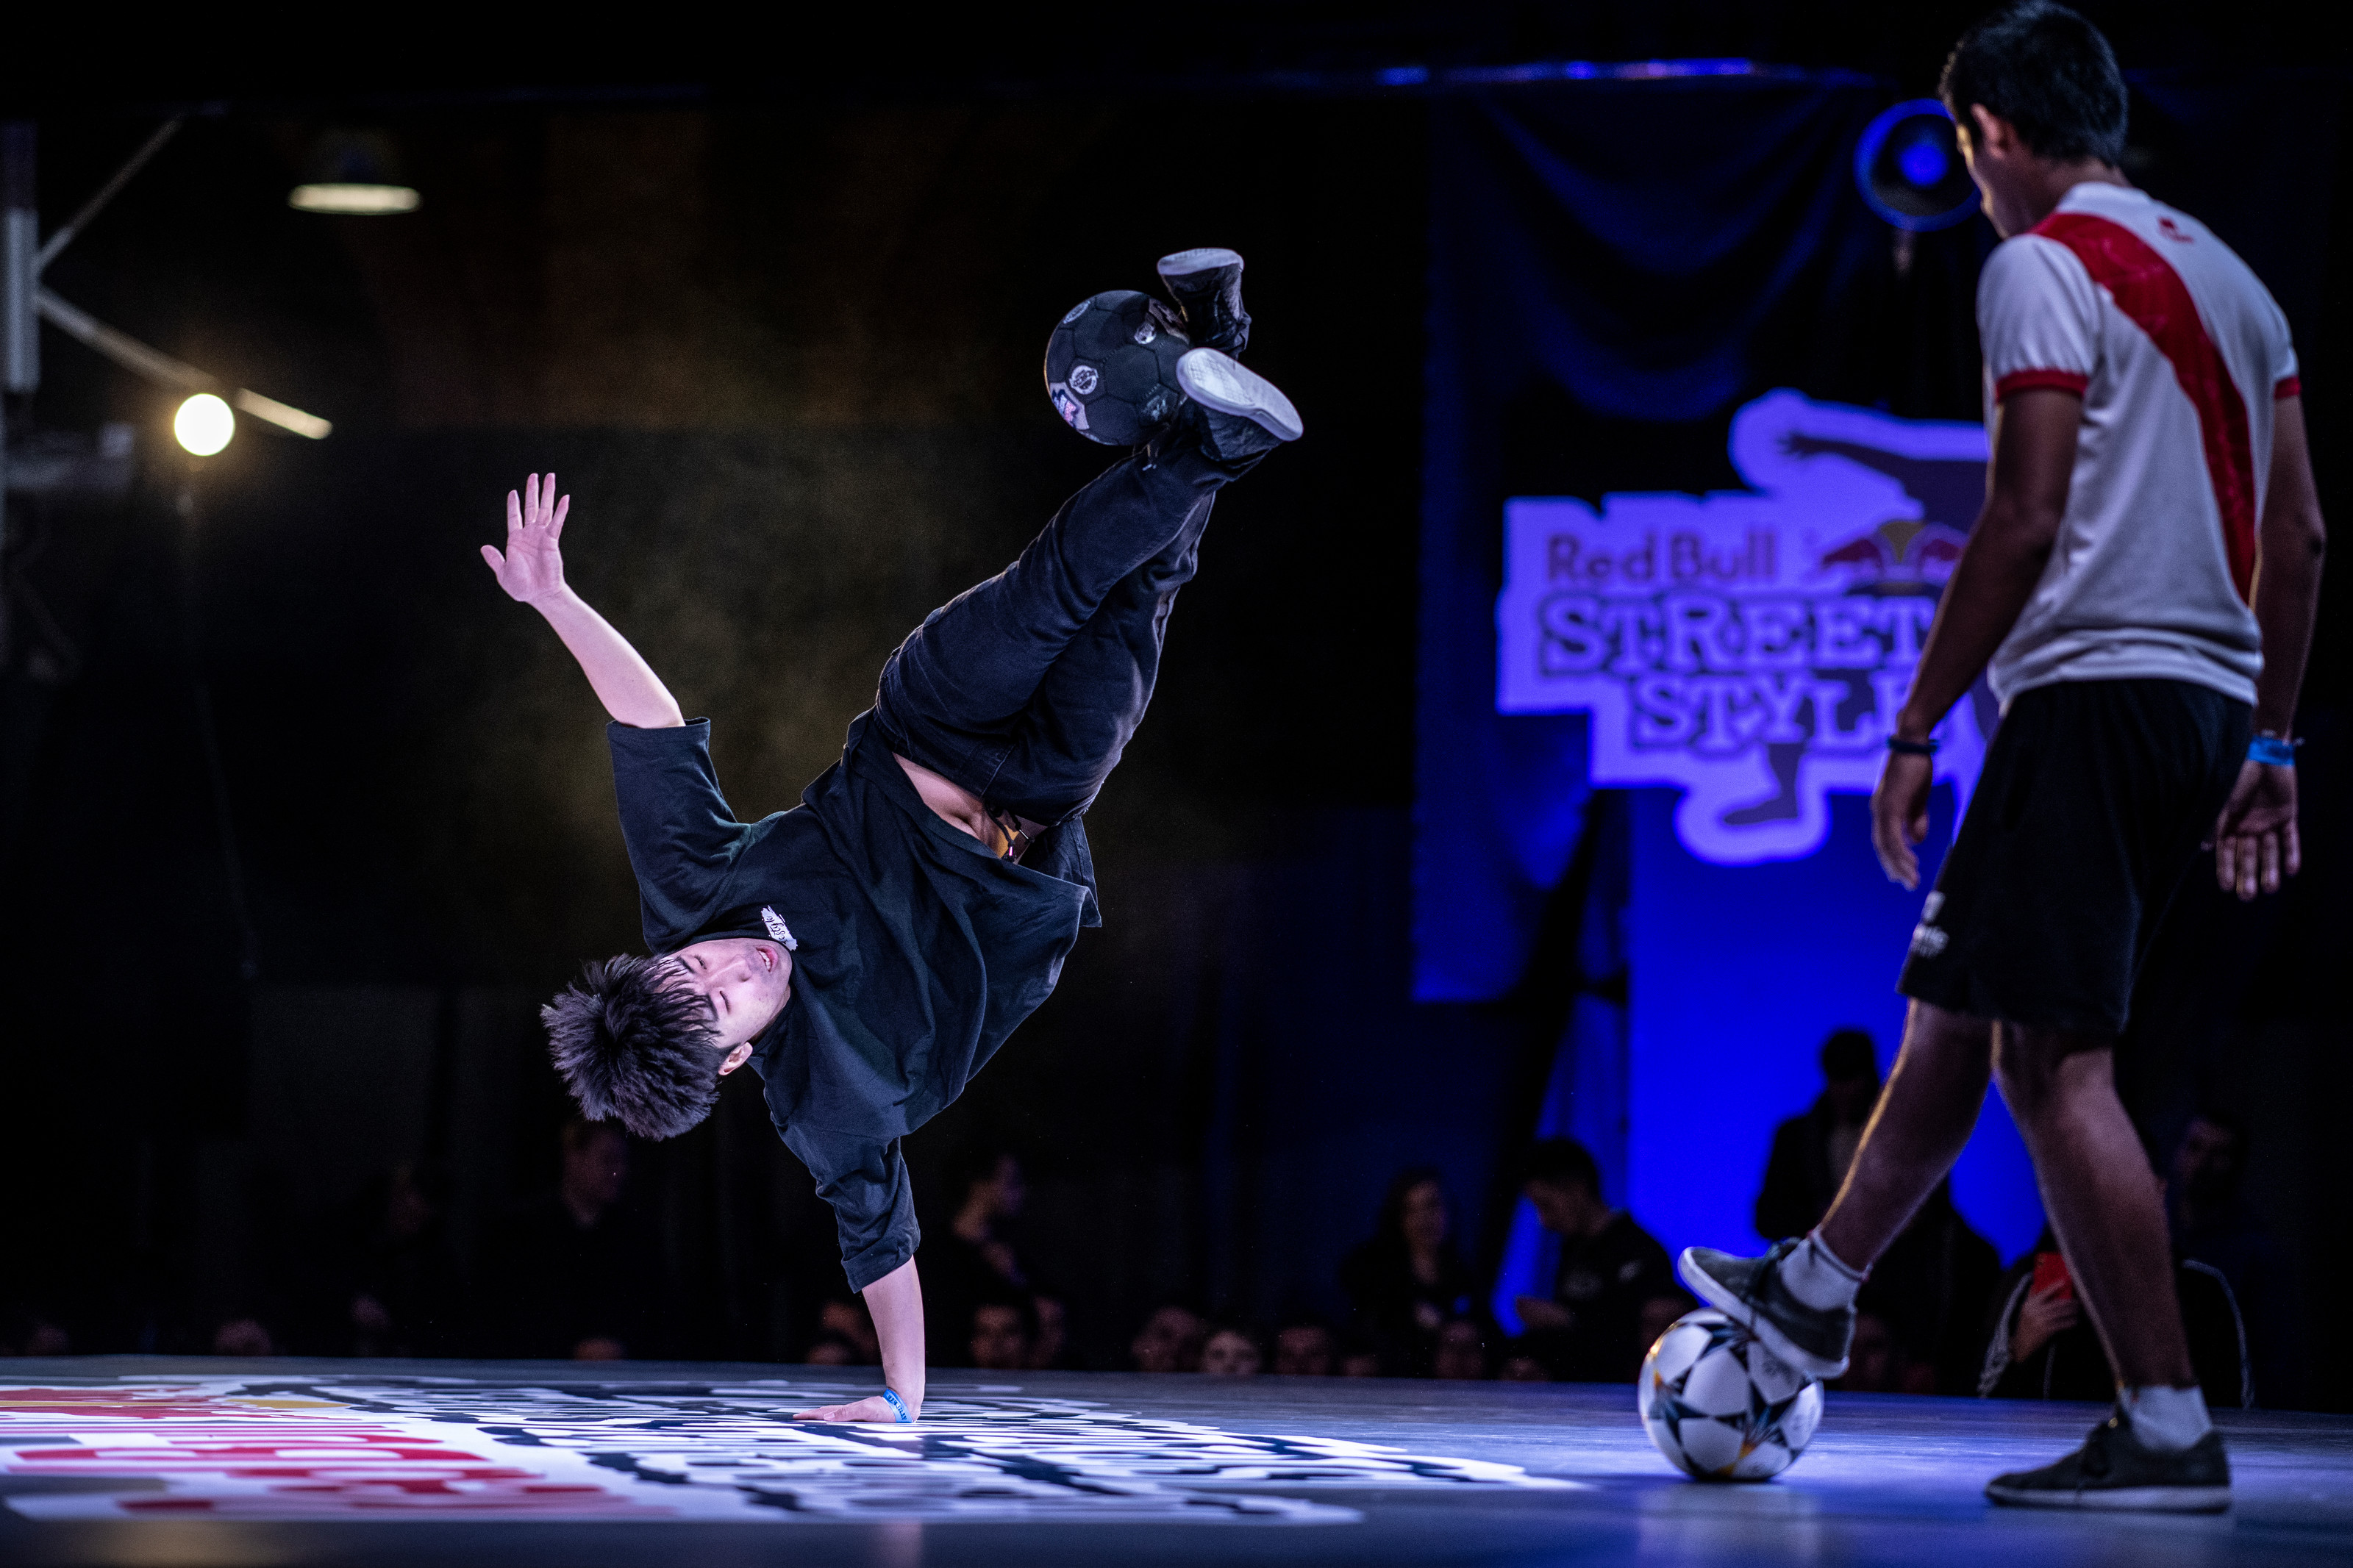 "Park ""Jinkun"" Suk of South Korea competes against Luis Venancio (R) of Peru during qualifications for the Red Bull Street Style World Final at Hala Gwardii, Warsaw, Poland on November 21, 2018."